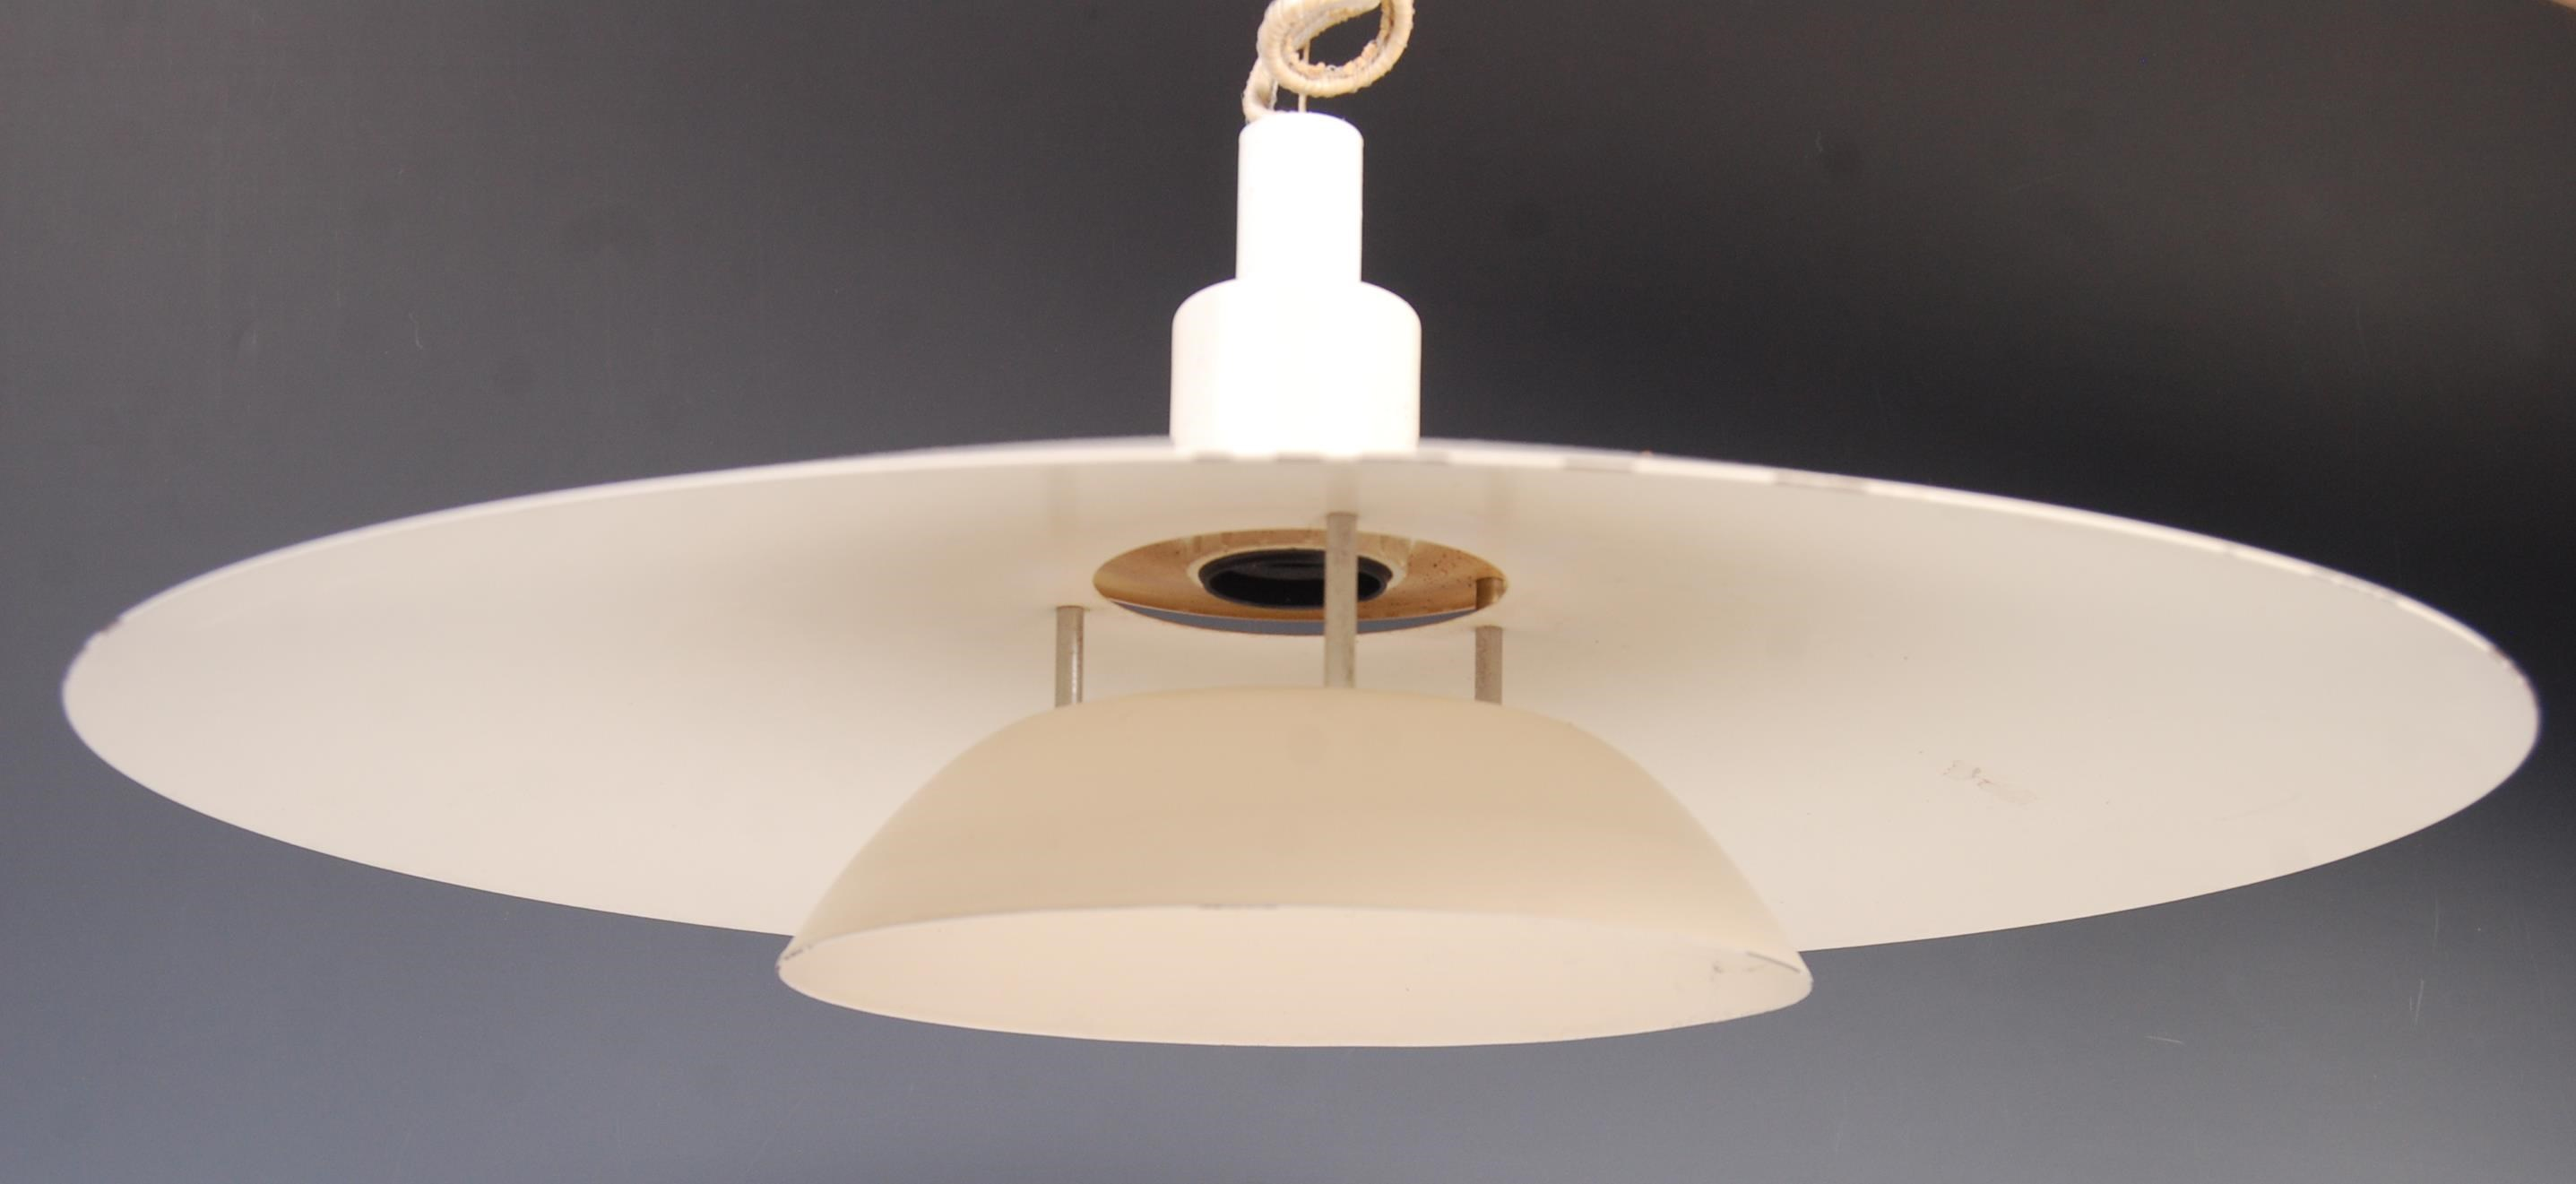 Lot 15 - 20TH CENTURY DANISH RETRO CEILING LAMP / LIGHT PENDANT FIXTURE